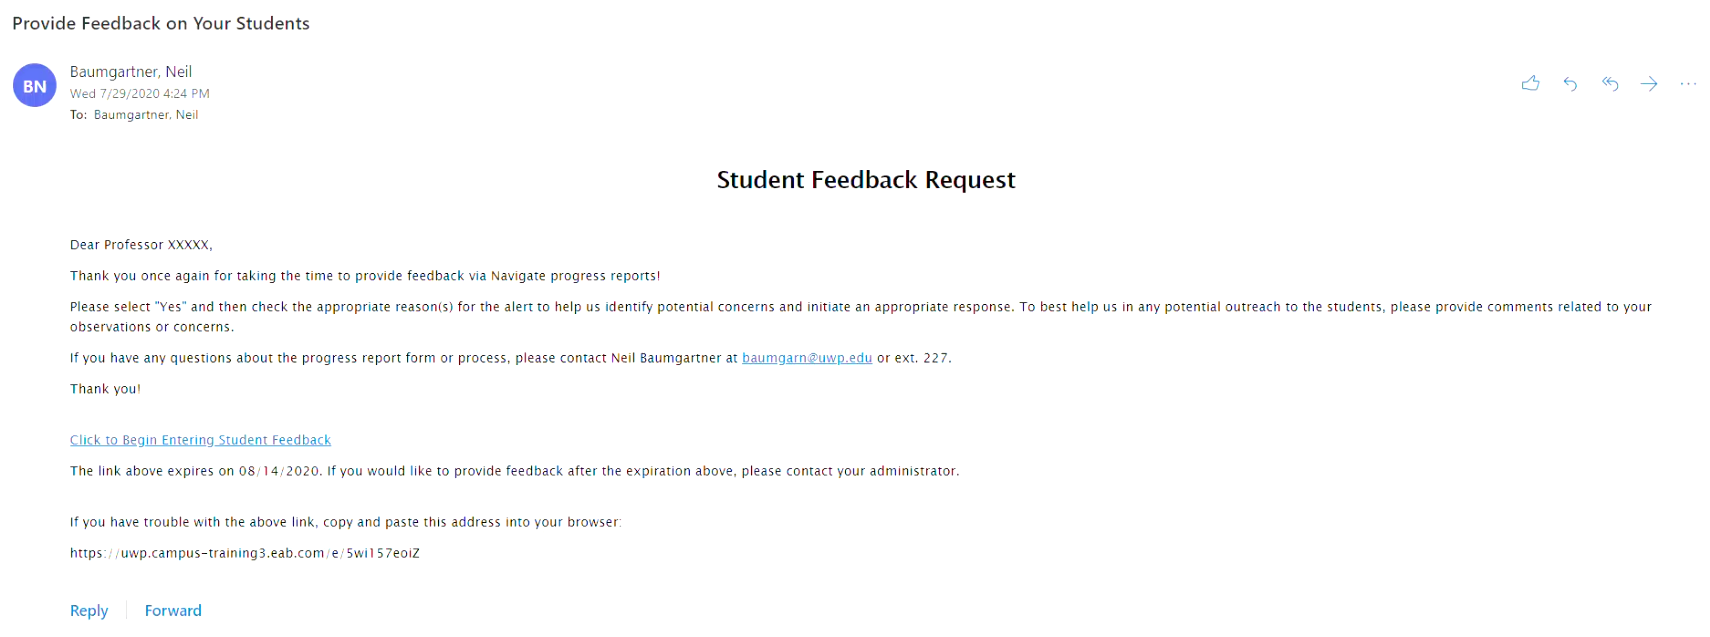 Example email from Navigate requesting feedback on students.